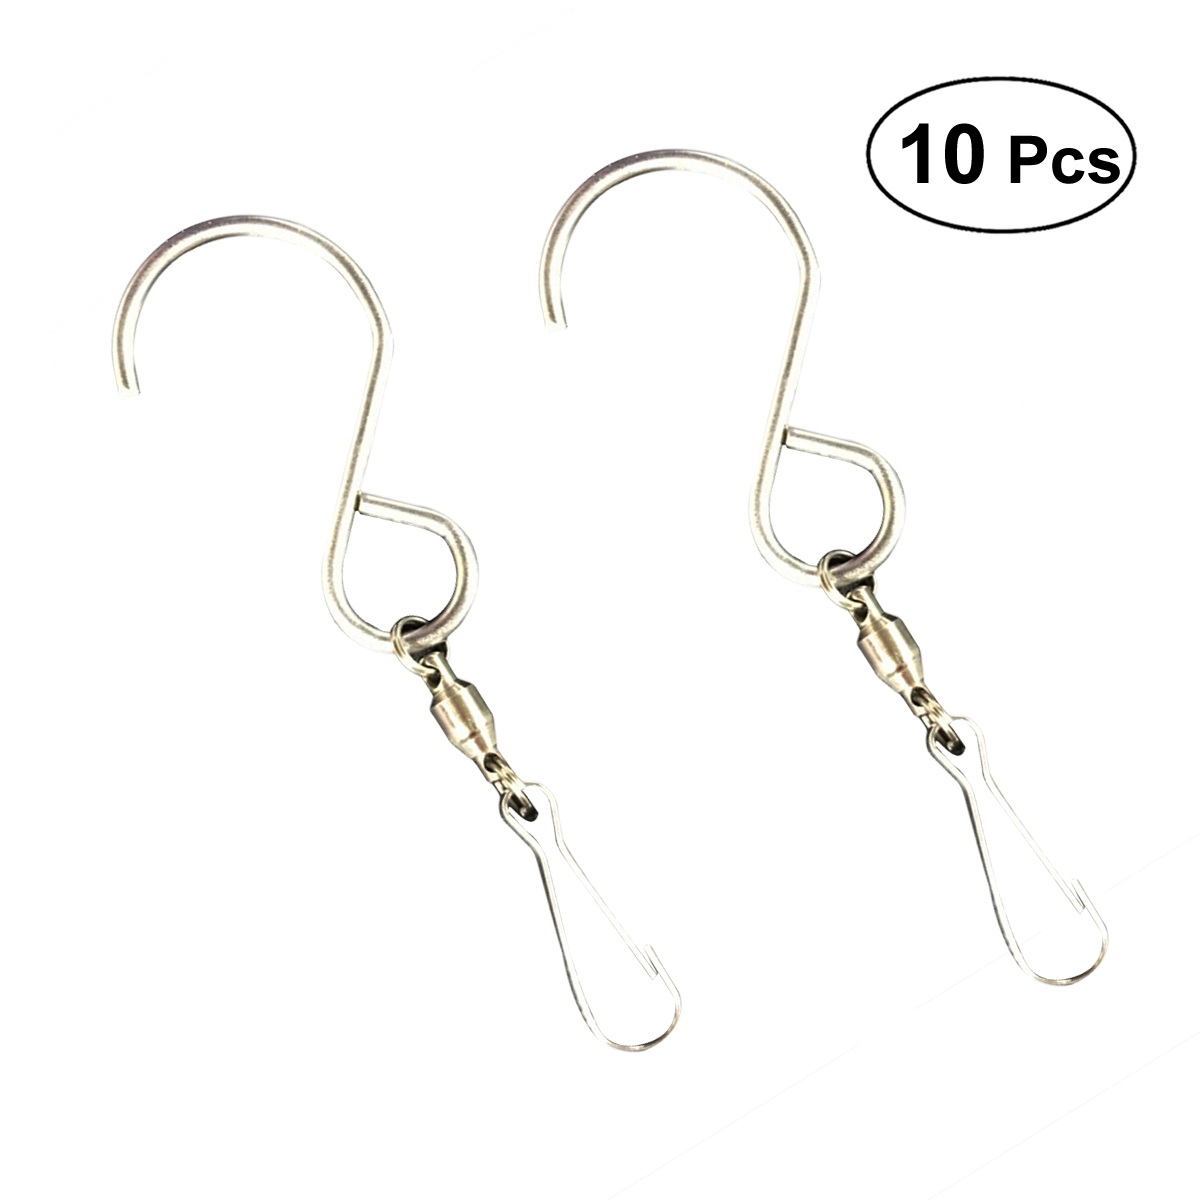 Stainless Steel S-Shape Swivel Hooks Wall Hanging Wind Chimes Rotate Rack Holder